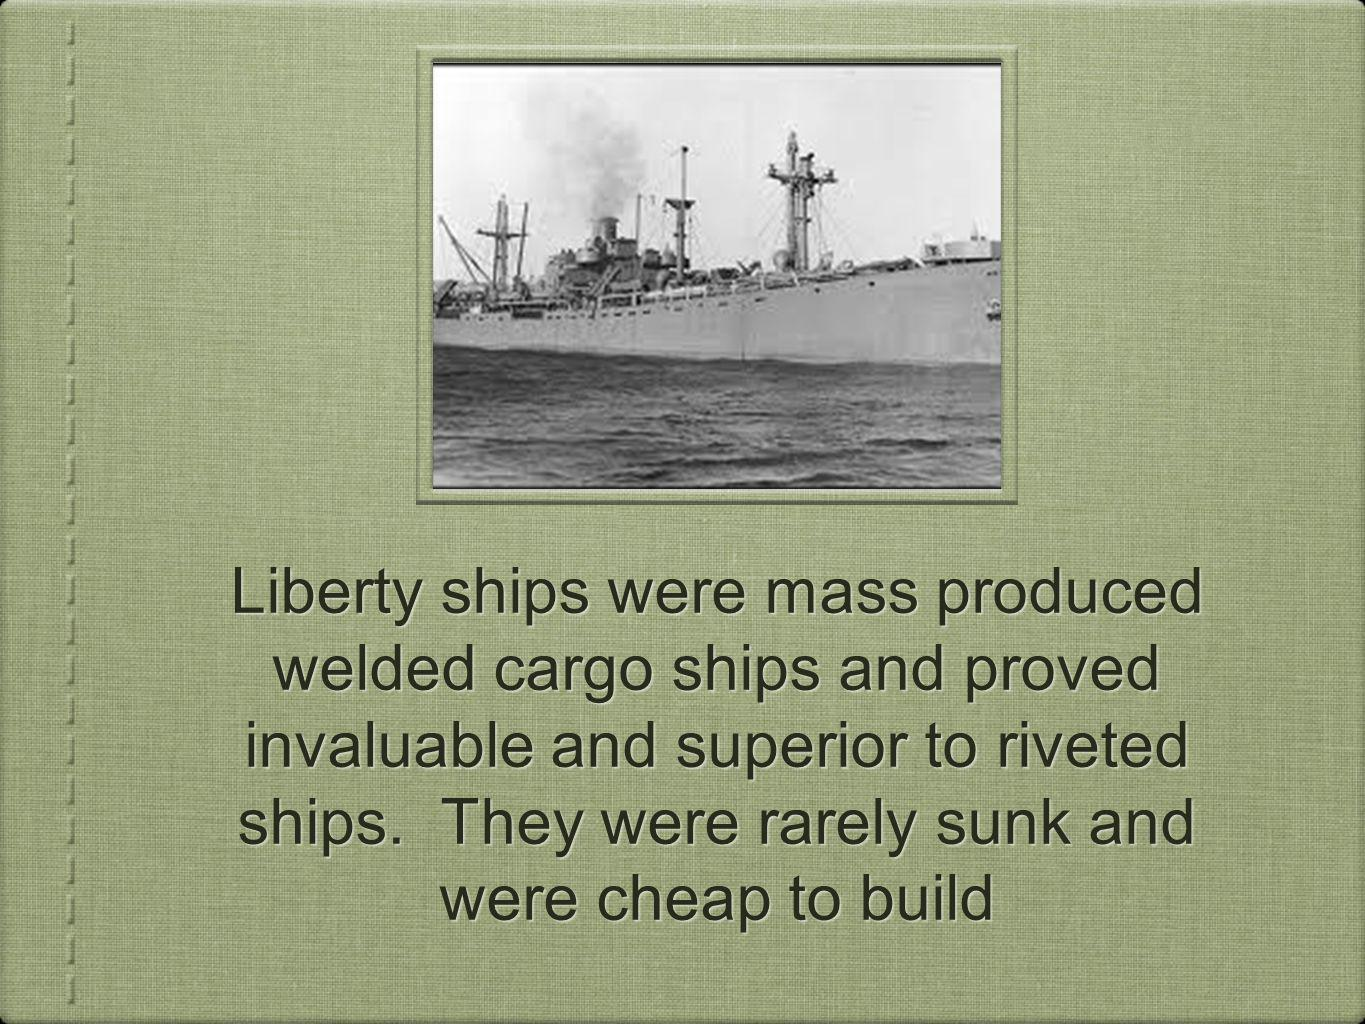 Liberty ships were mass produced welded cargo ships and proved invaluable and superior to riveted ships.